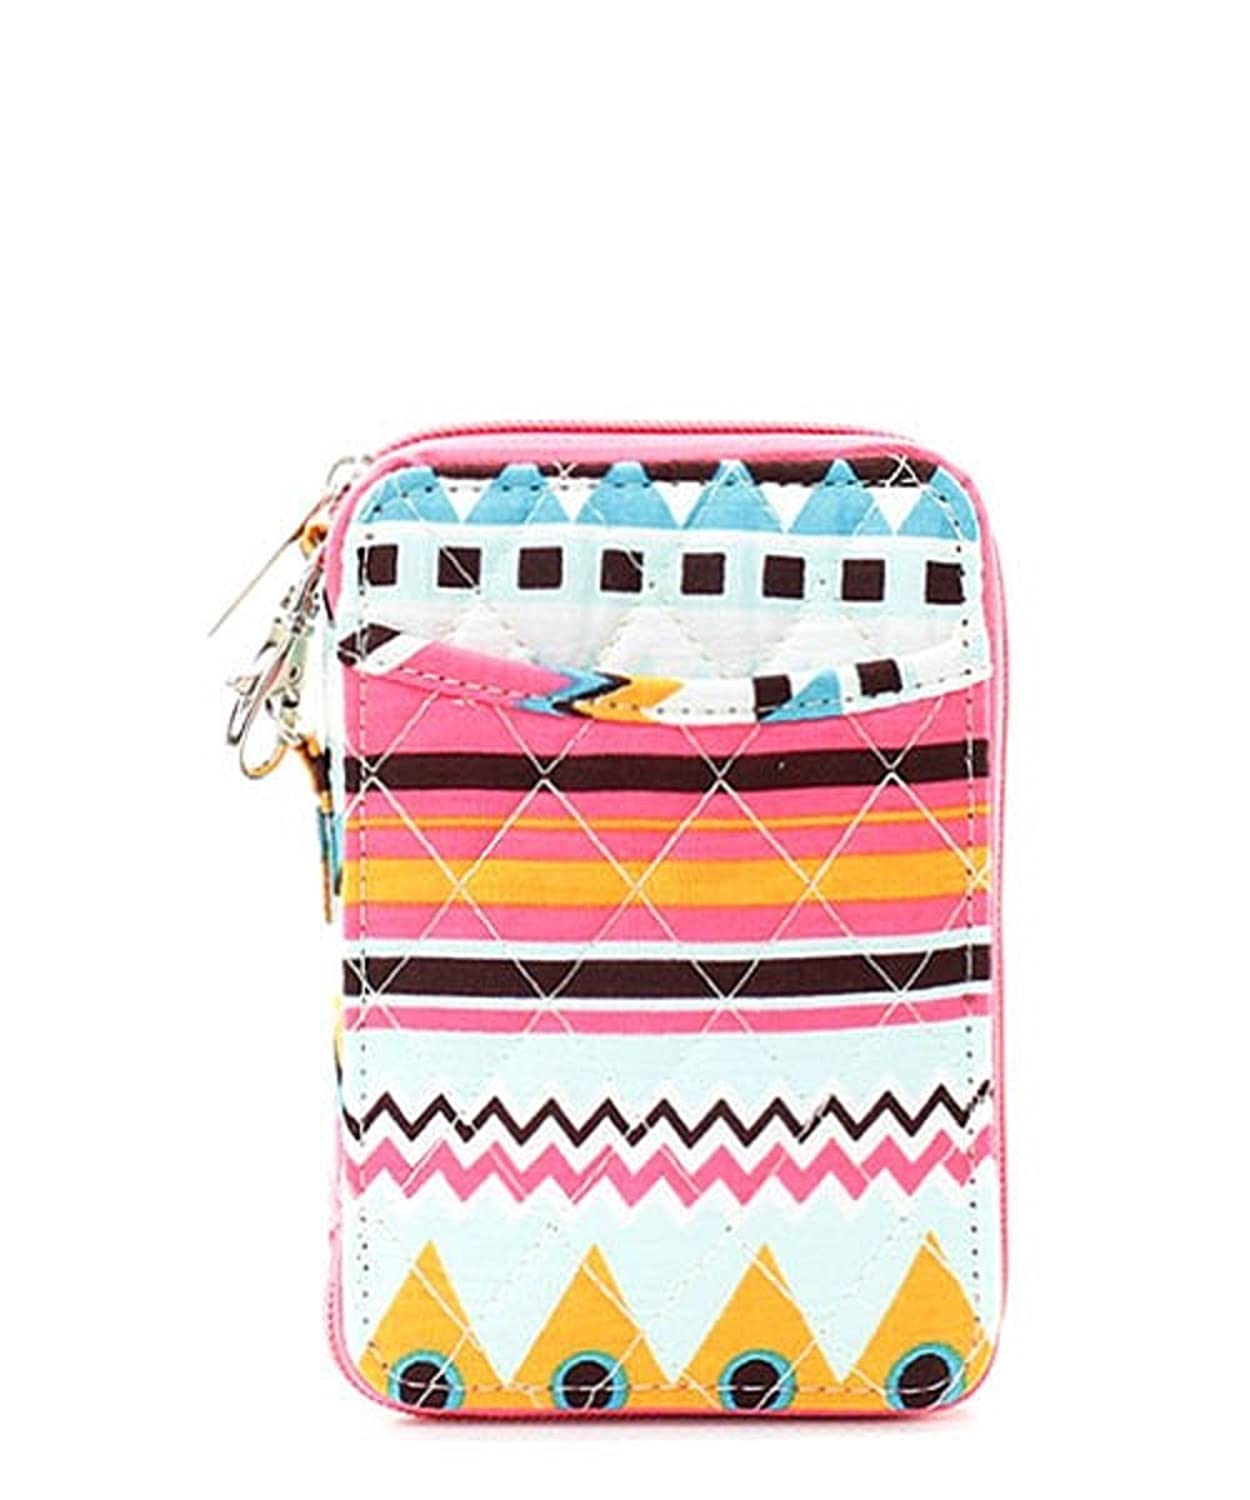 Aztec Southwestern Print Quilted Mini Wallet Wristlet Pink